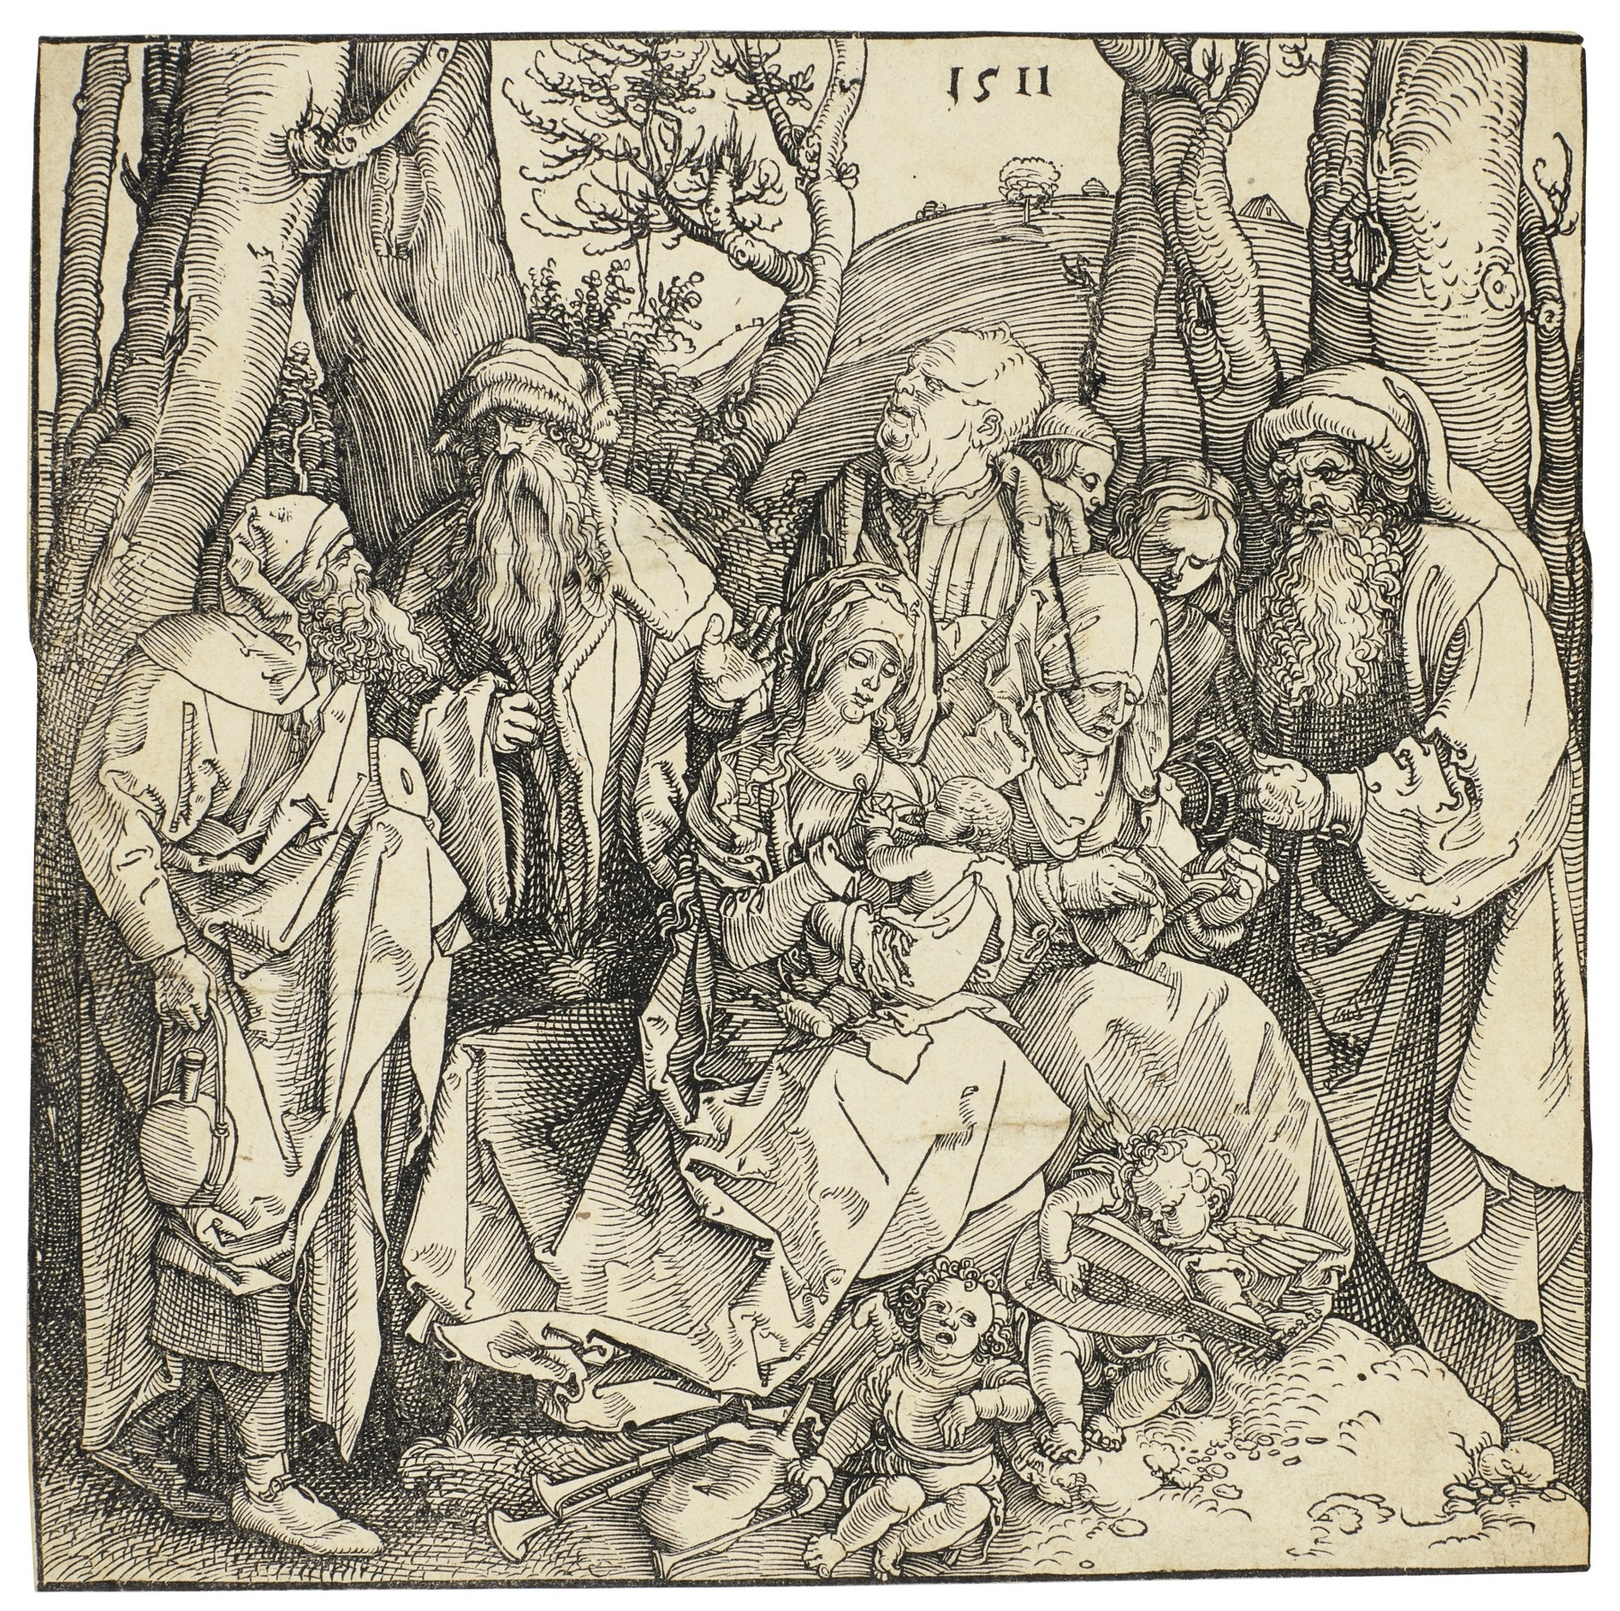 Albrecht Durer-The Holy Kinship With The Lute-Playing Angels (B. 97; M., Holl. 216)-1511